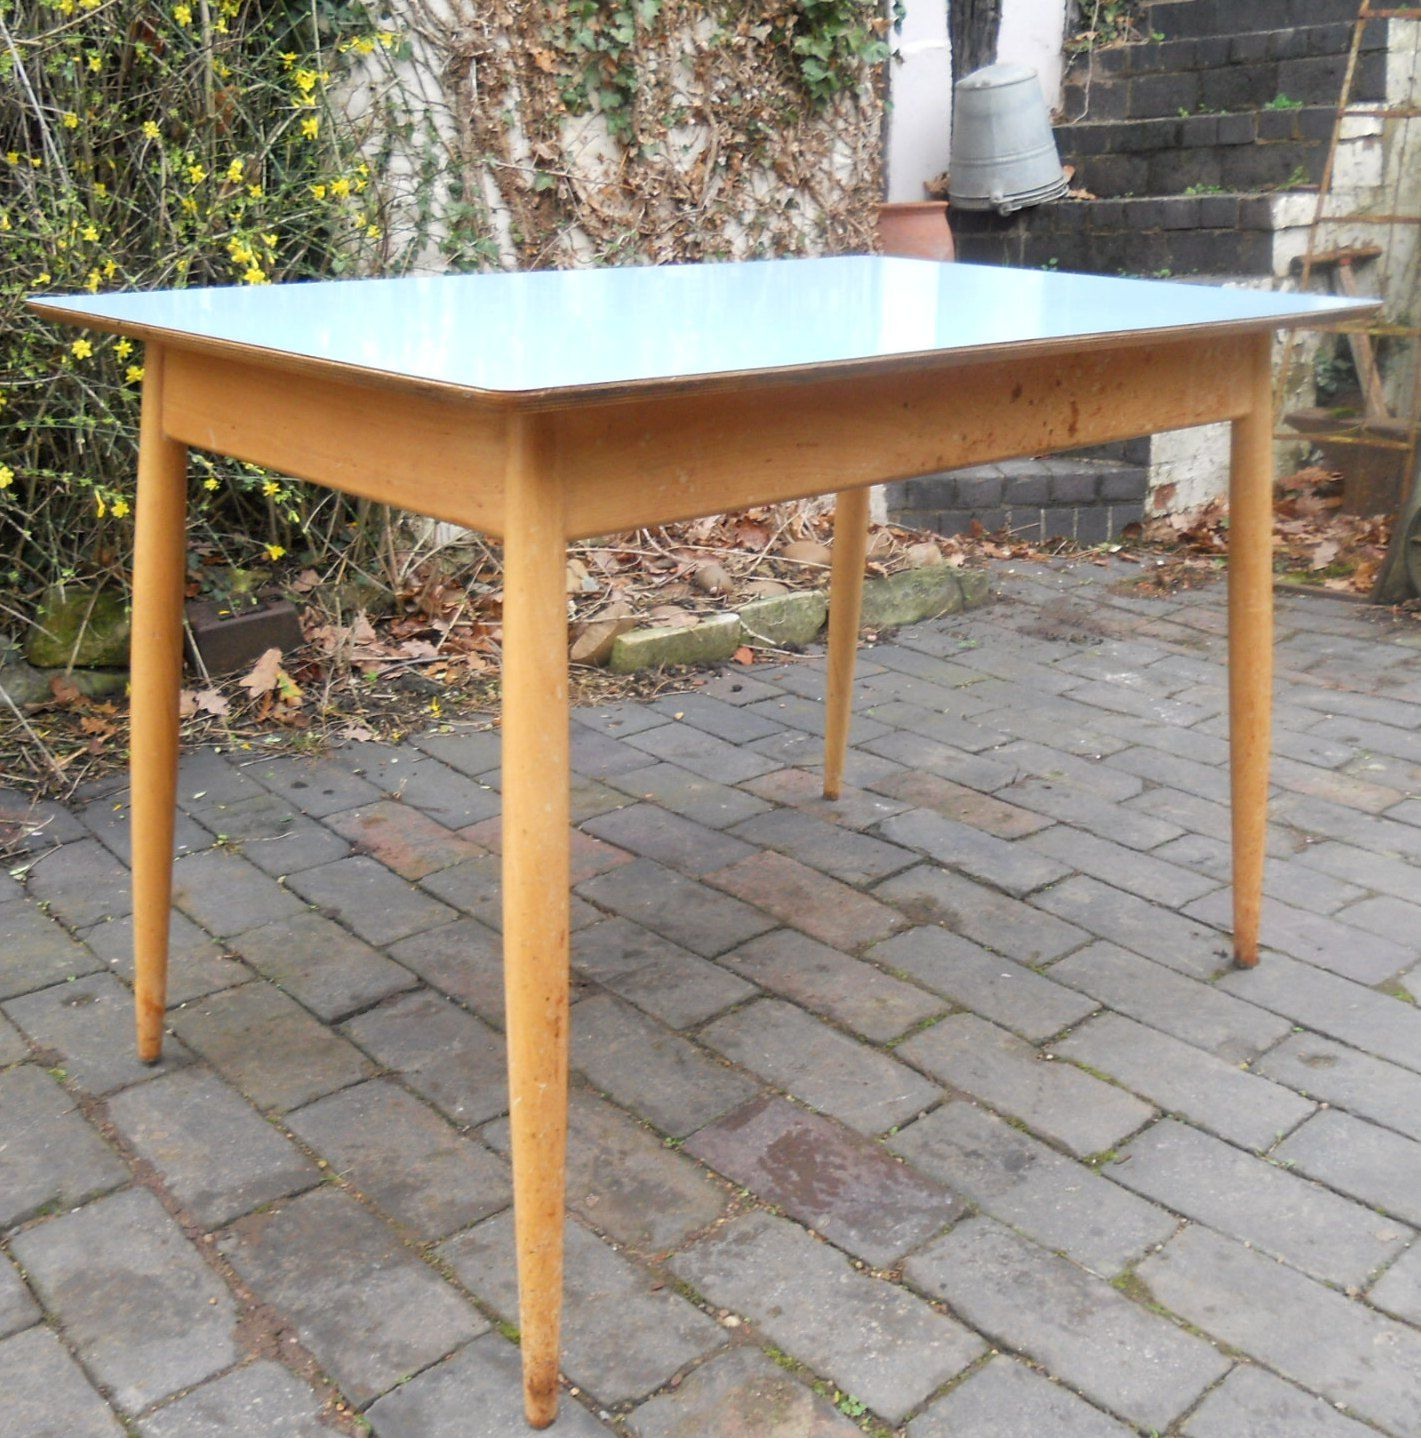 sold   retro 1960 u0027s kitchen table sold   retro 1960 s kitchen table  rh   harrisonantiquefurniture co uk